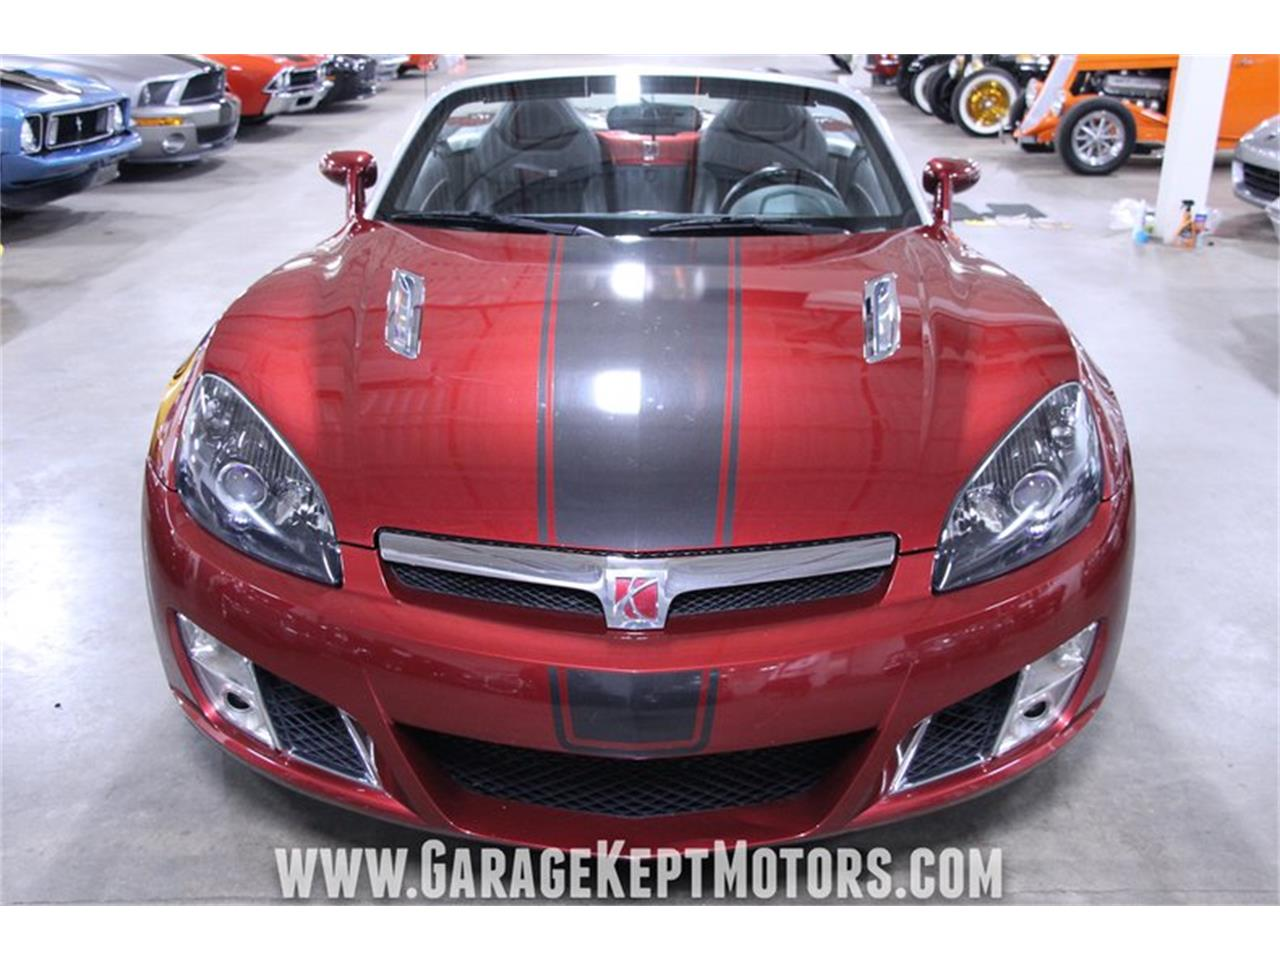 2009 Saturn Sky for sale in Grand Rapids, MI – photo 30